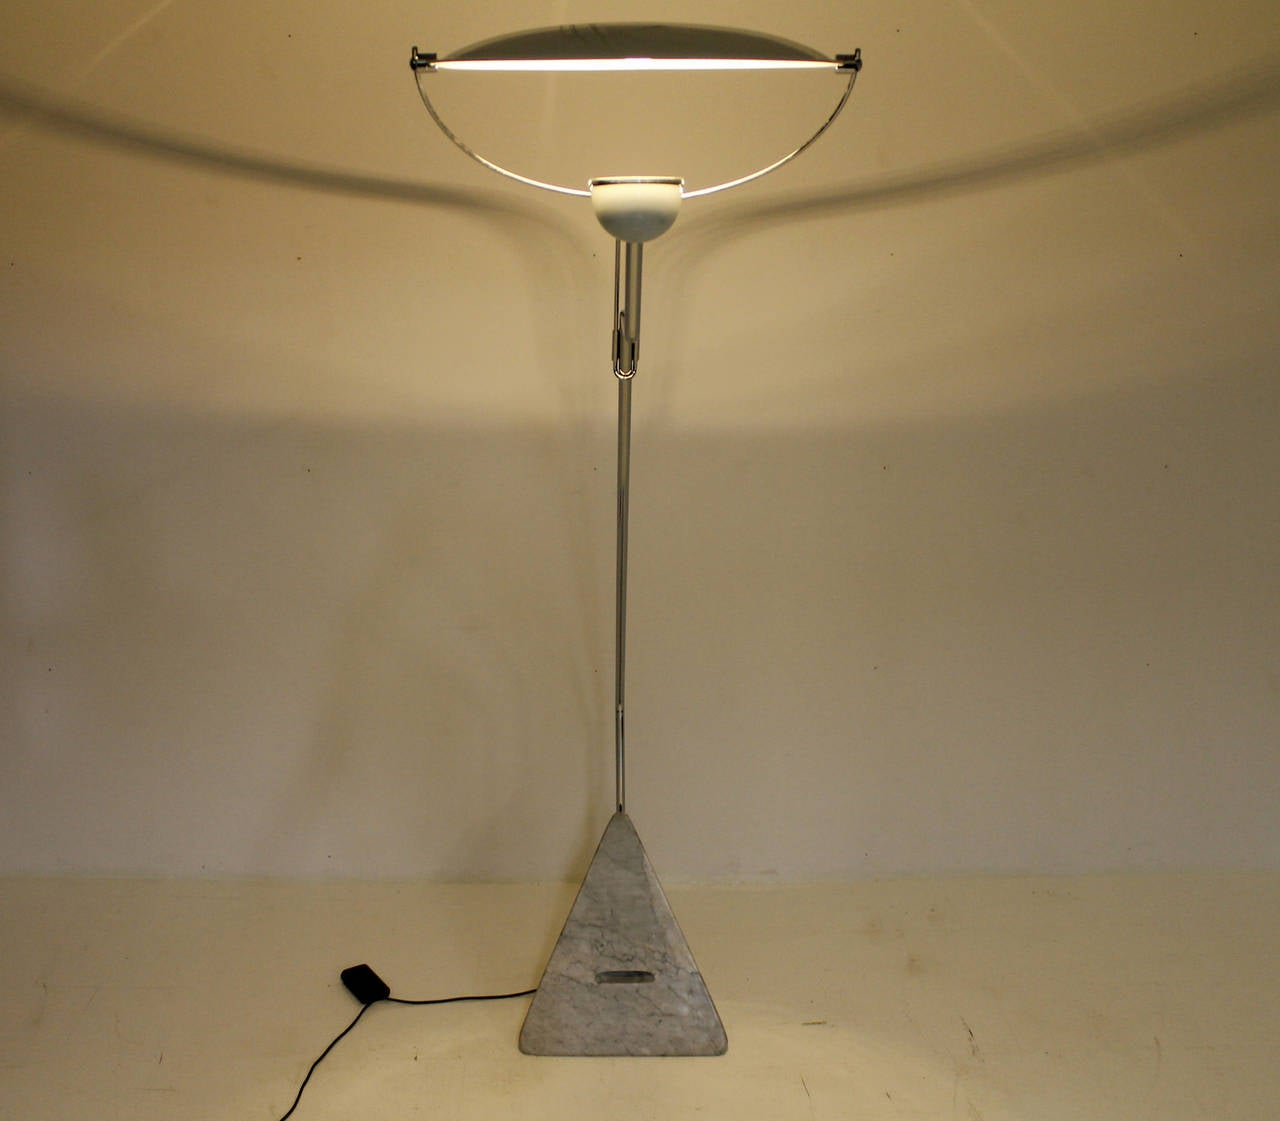 Marble Floor Lamp Riflessione by Claudio Salocchi for Skipper, Italy 1970s